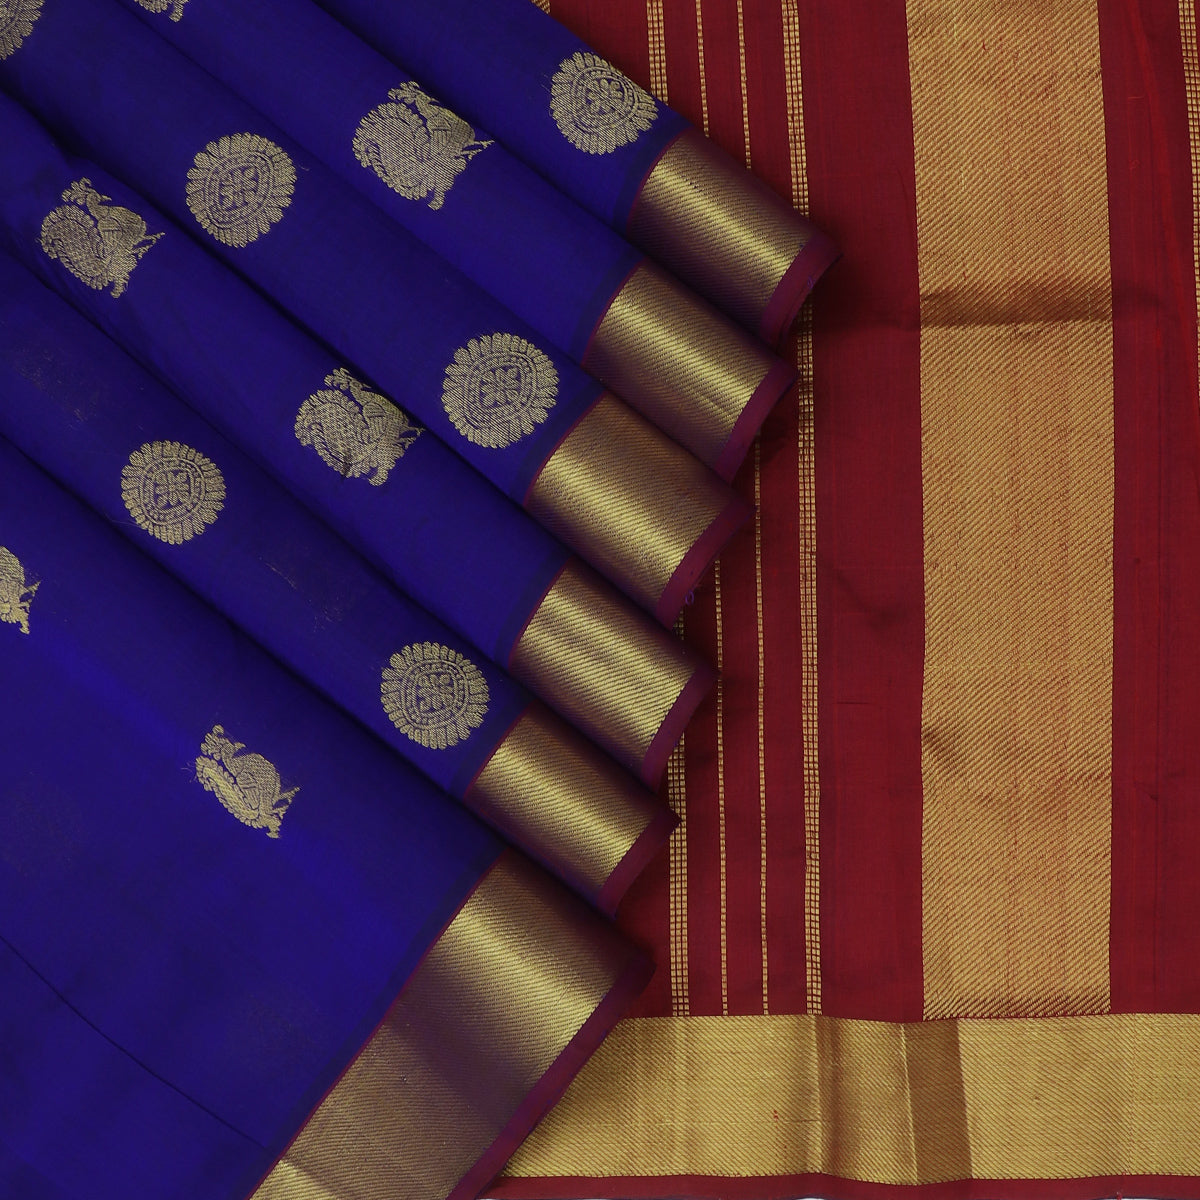 Silk Cotton Saree Blue with Annam and Mandala Buttas and zari border 9 yards